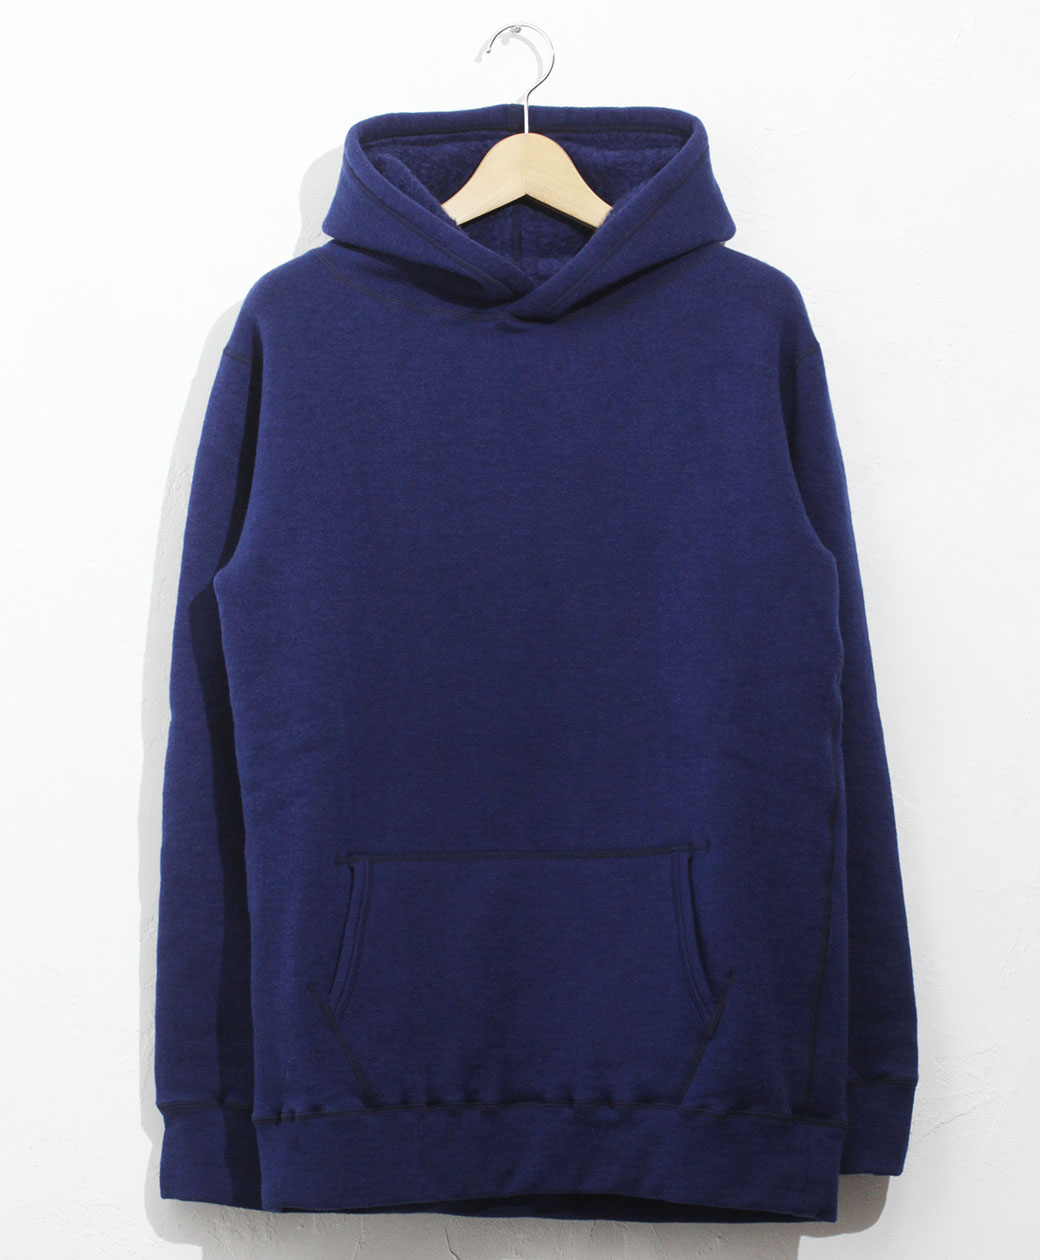 yetina pullover hoodie(Royal blue)